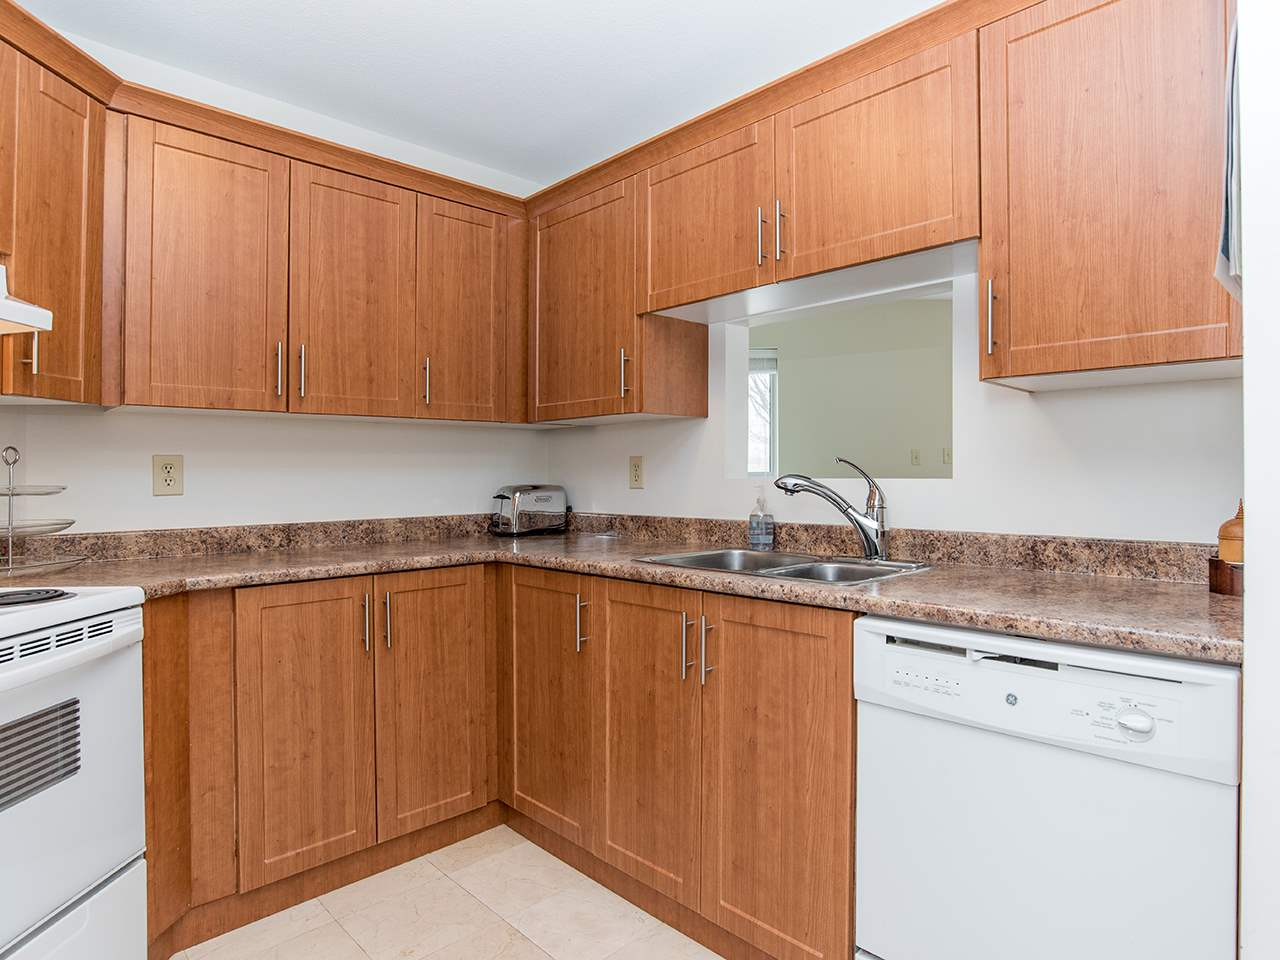 "Photo 3: 110 8651 ACKROYD Road in Richmond: Brighouse Condo for sale in ""The Cartier"" : MLS® # R2152253"